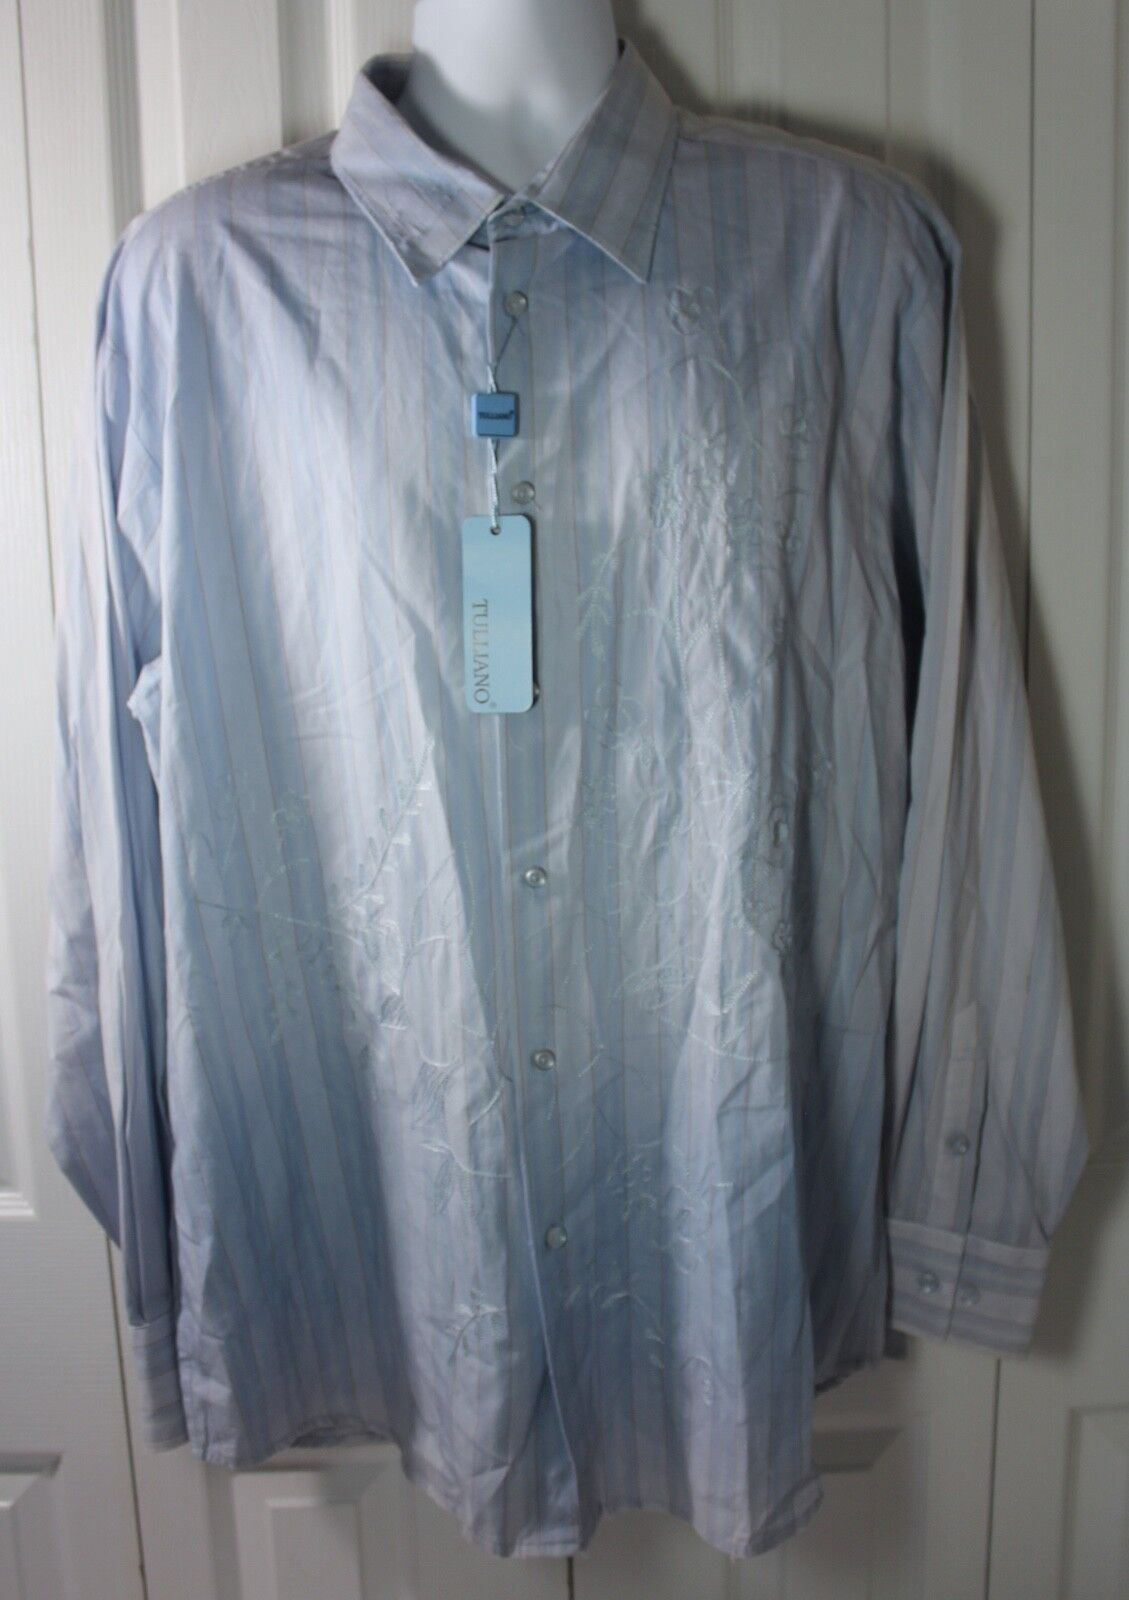 Tulliano Men's 2XL XXL 100% Cotton Embroidered Shirt NWT MSRP